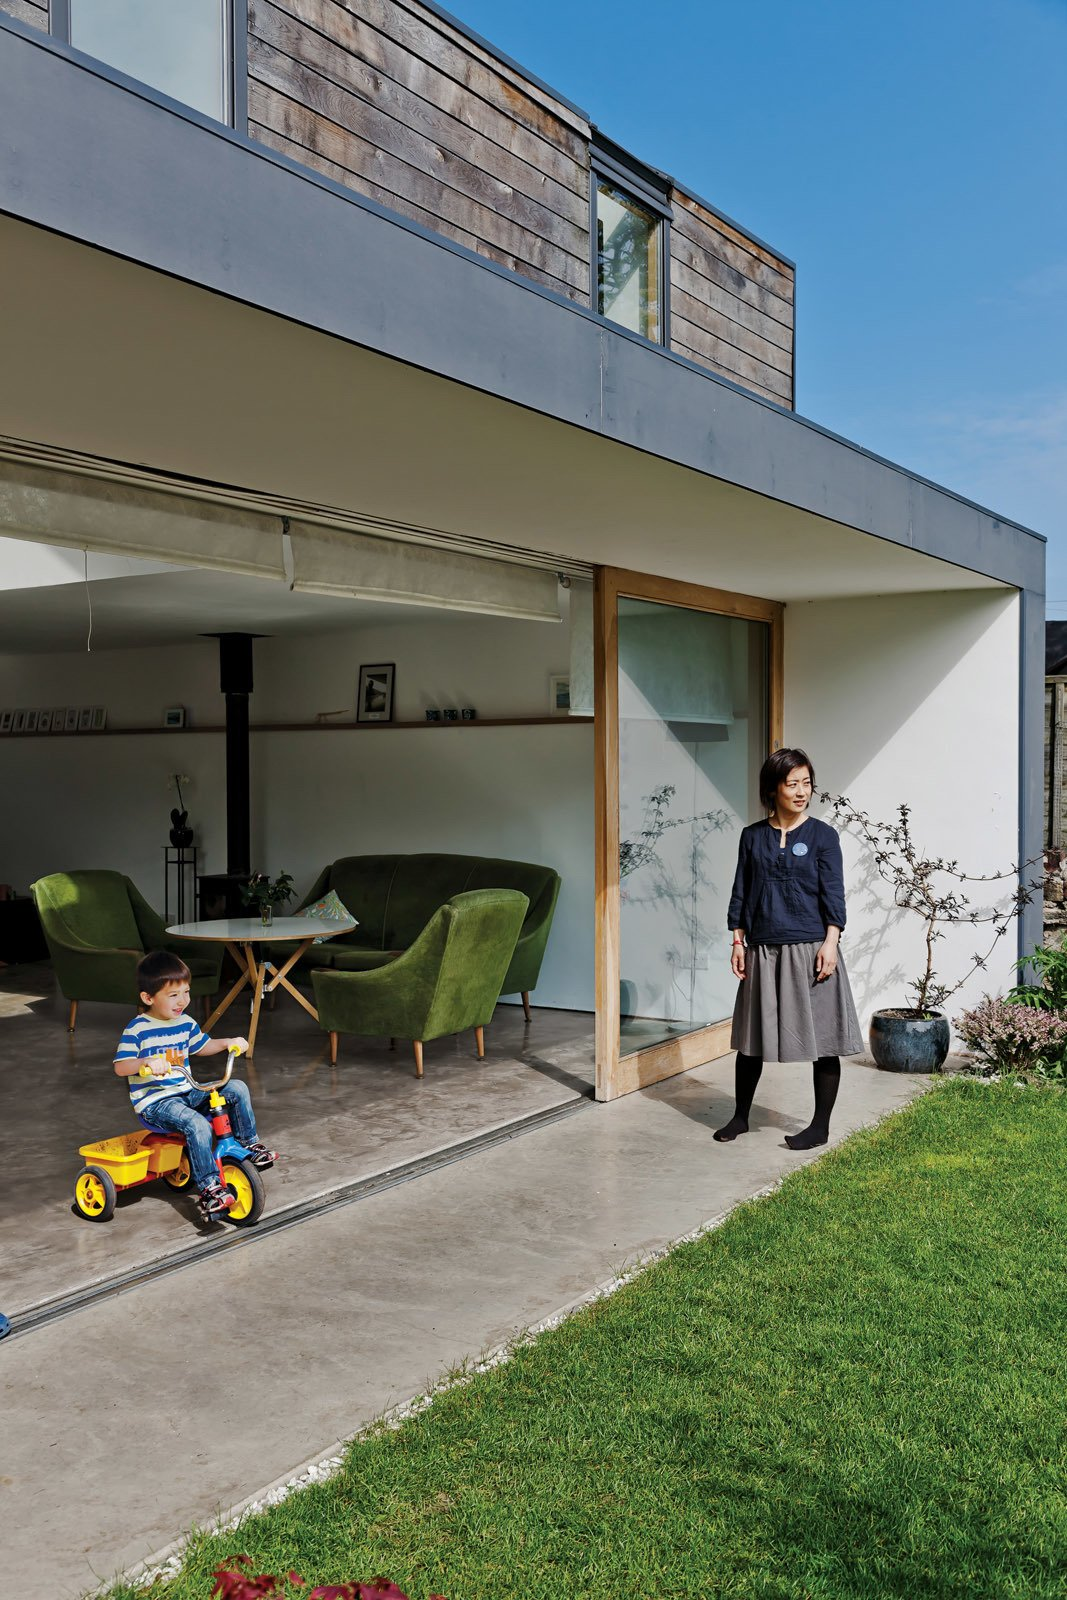 The back of the house has sliding doors that open far enough to expose the entire livingroom to the families' back yard.  Japanese Homes by Dwell from A Piece of Home